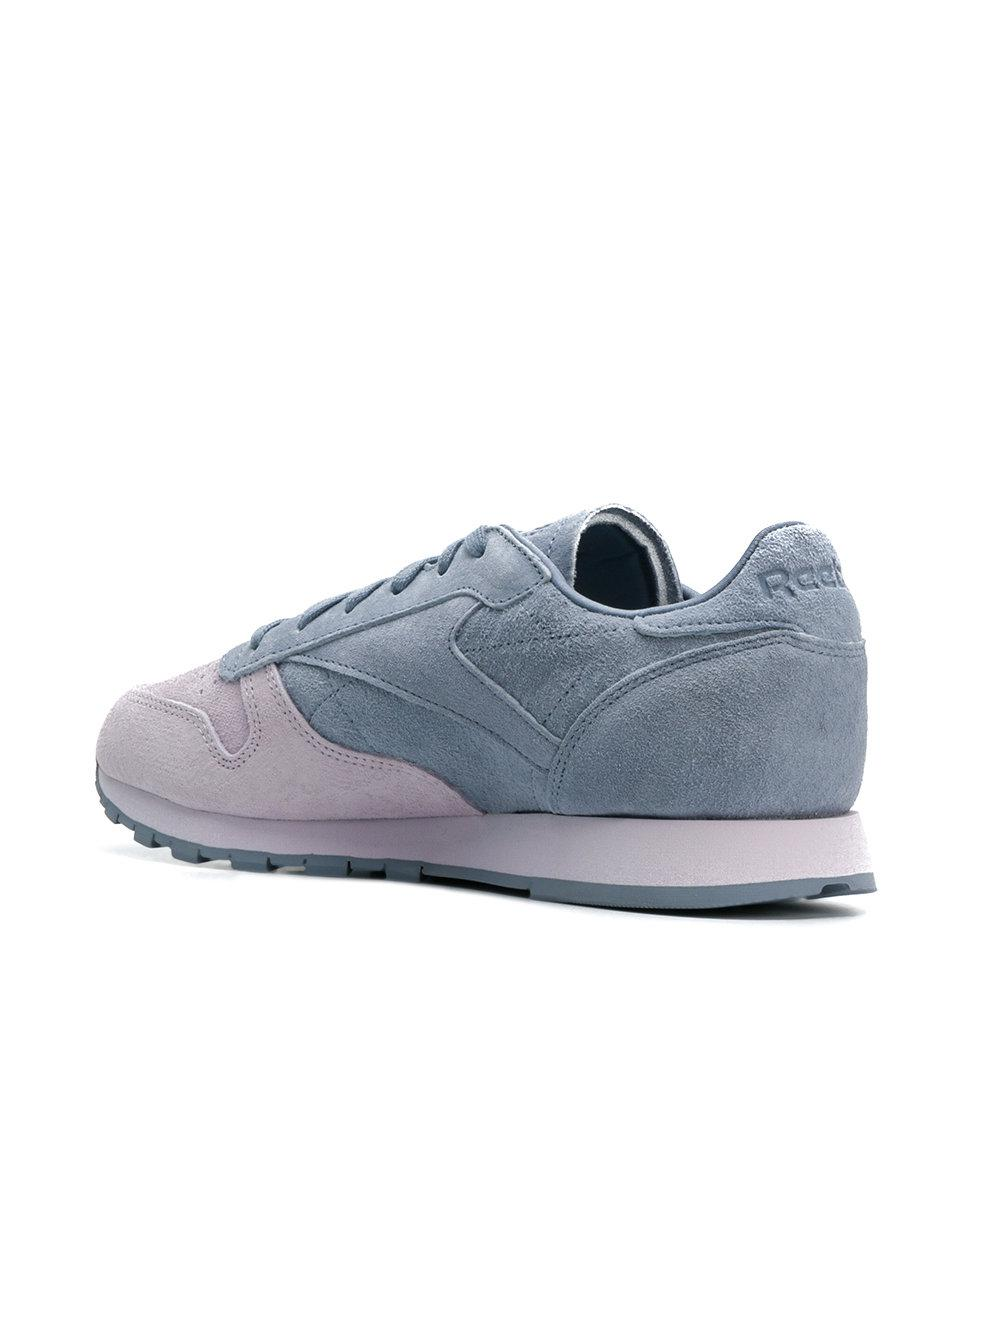 Reebok colour block lace-up sneakers Inexpensive cheap price for sale 2014 free shipping get authentic t062zeg